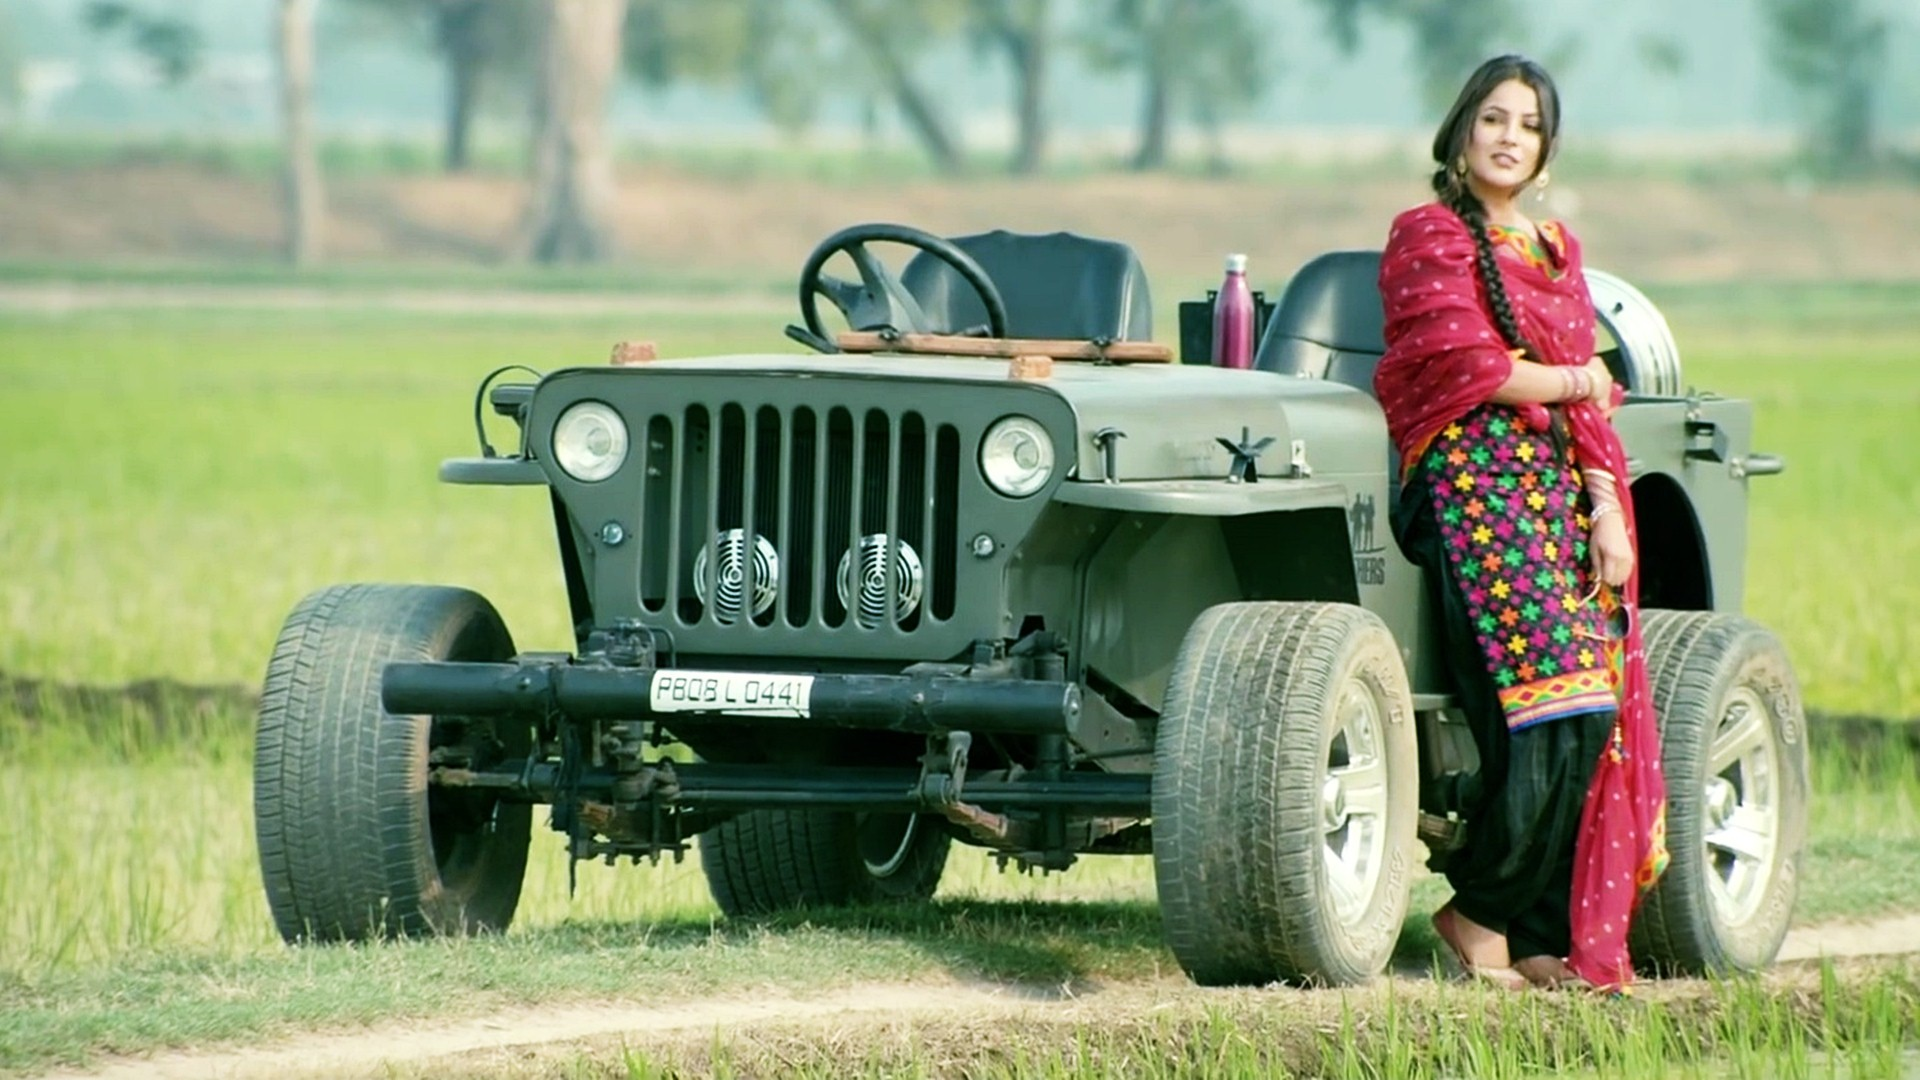 Res: 1920x1080, Punjabi Model With Jeep Car Wallpaper 04733